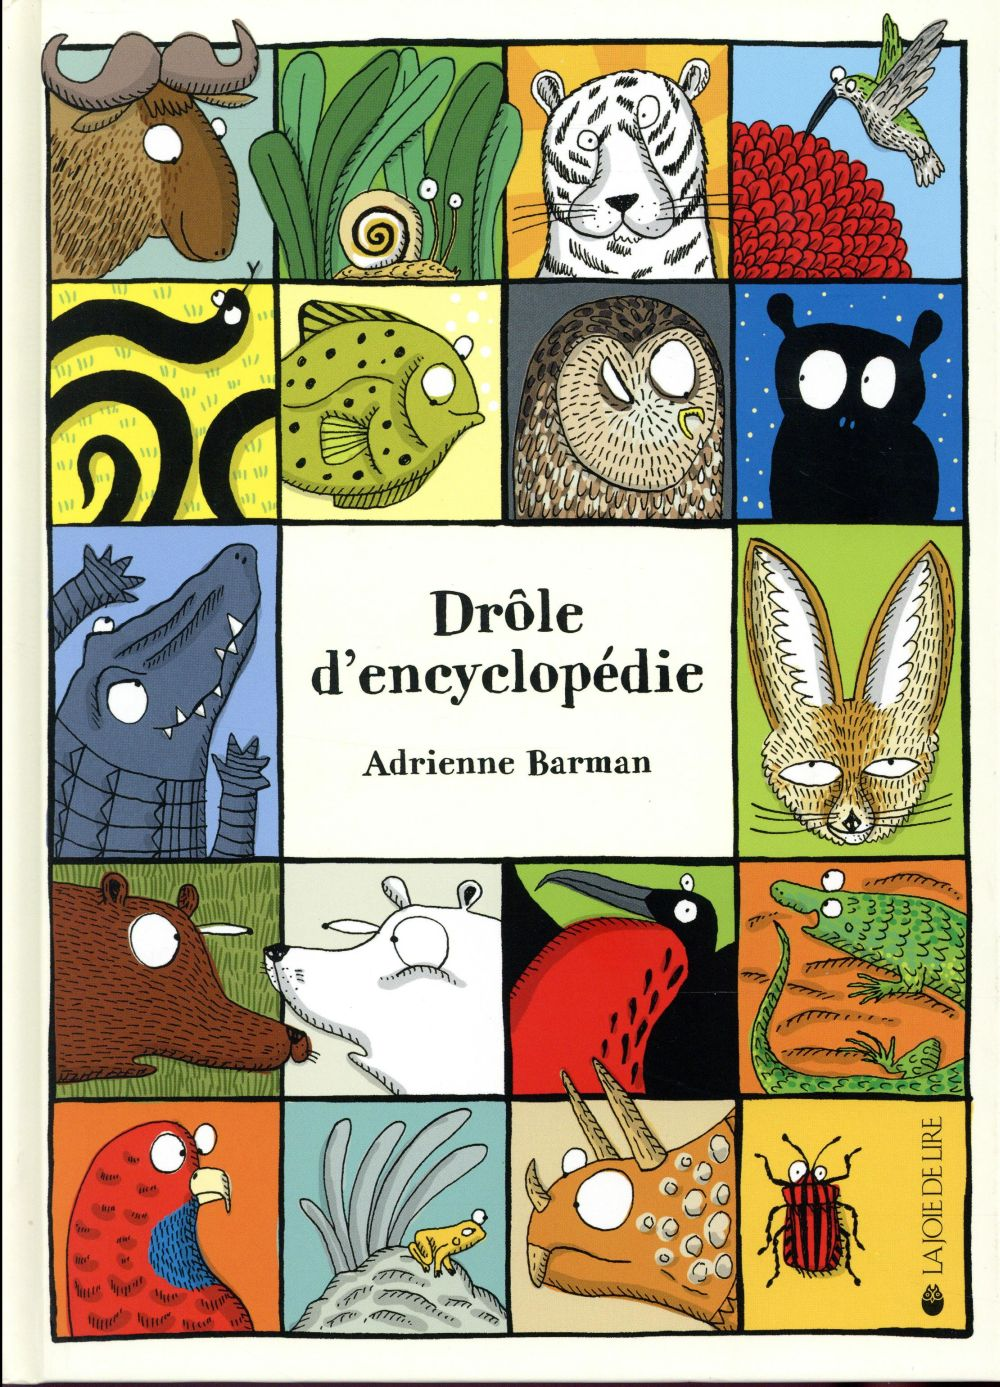 DROLE D'ENCYCLOPEDIE